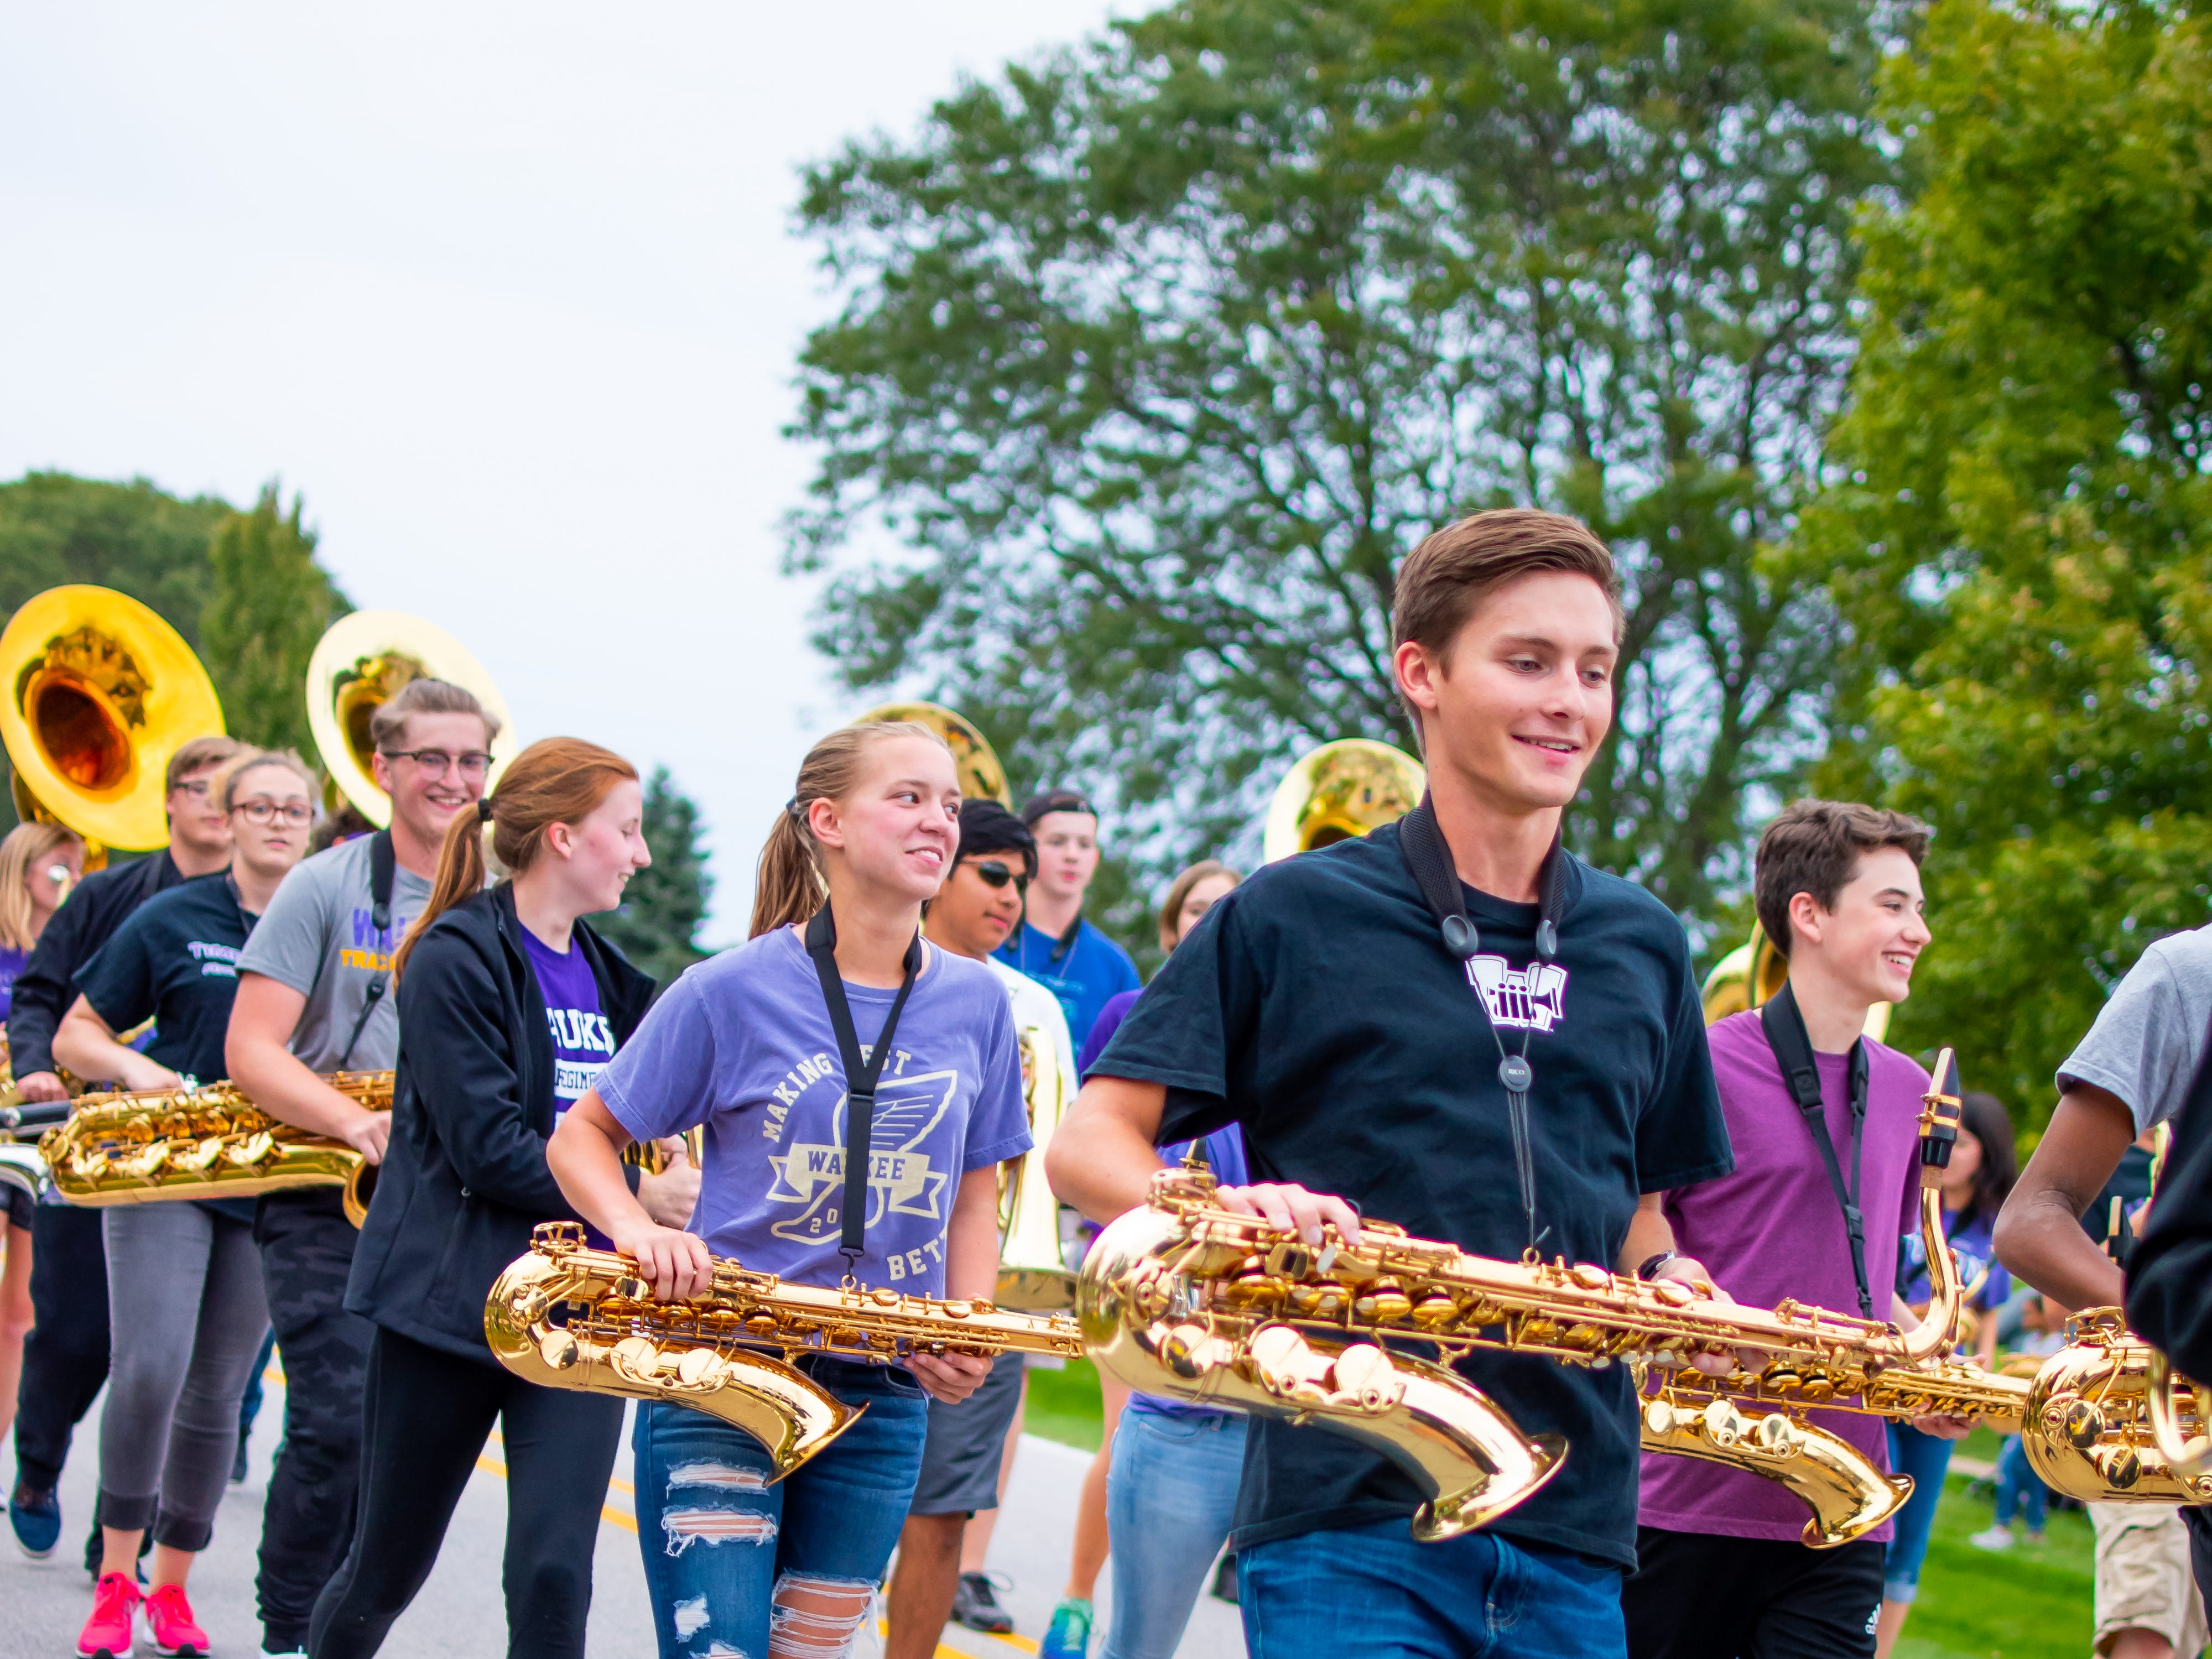 The Waukee high school band march in the Waukee Homecoming Parade on Thursday, September 27, 2018 in Waukee.